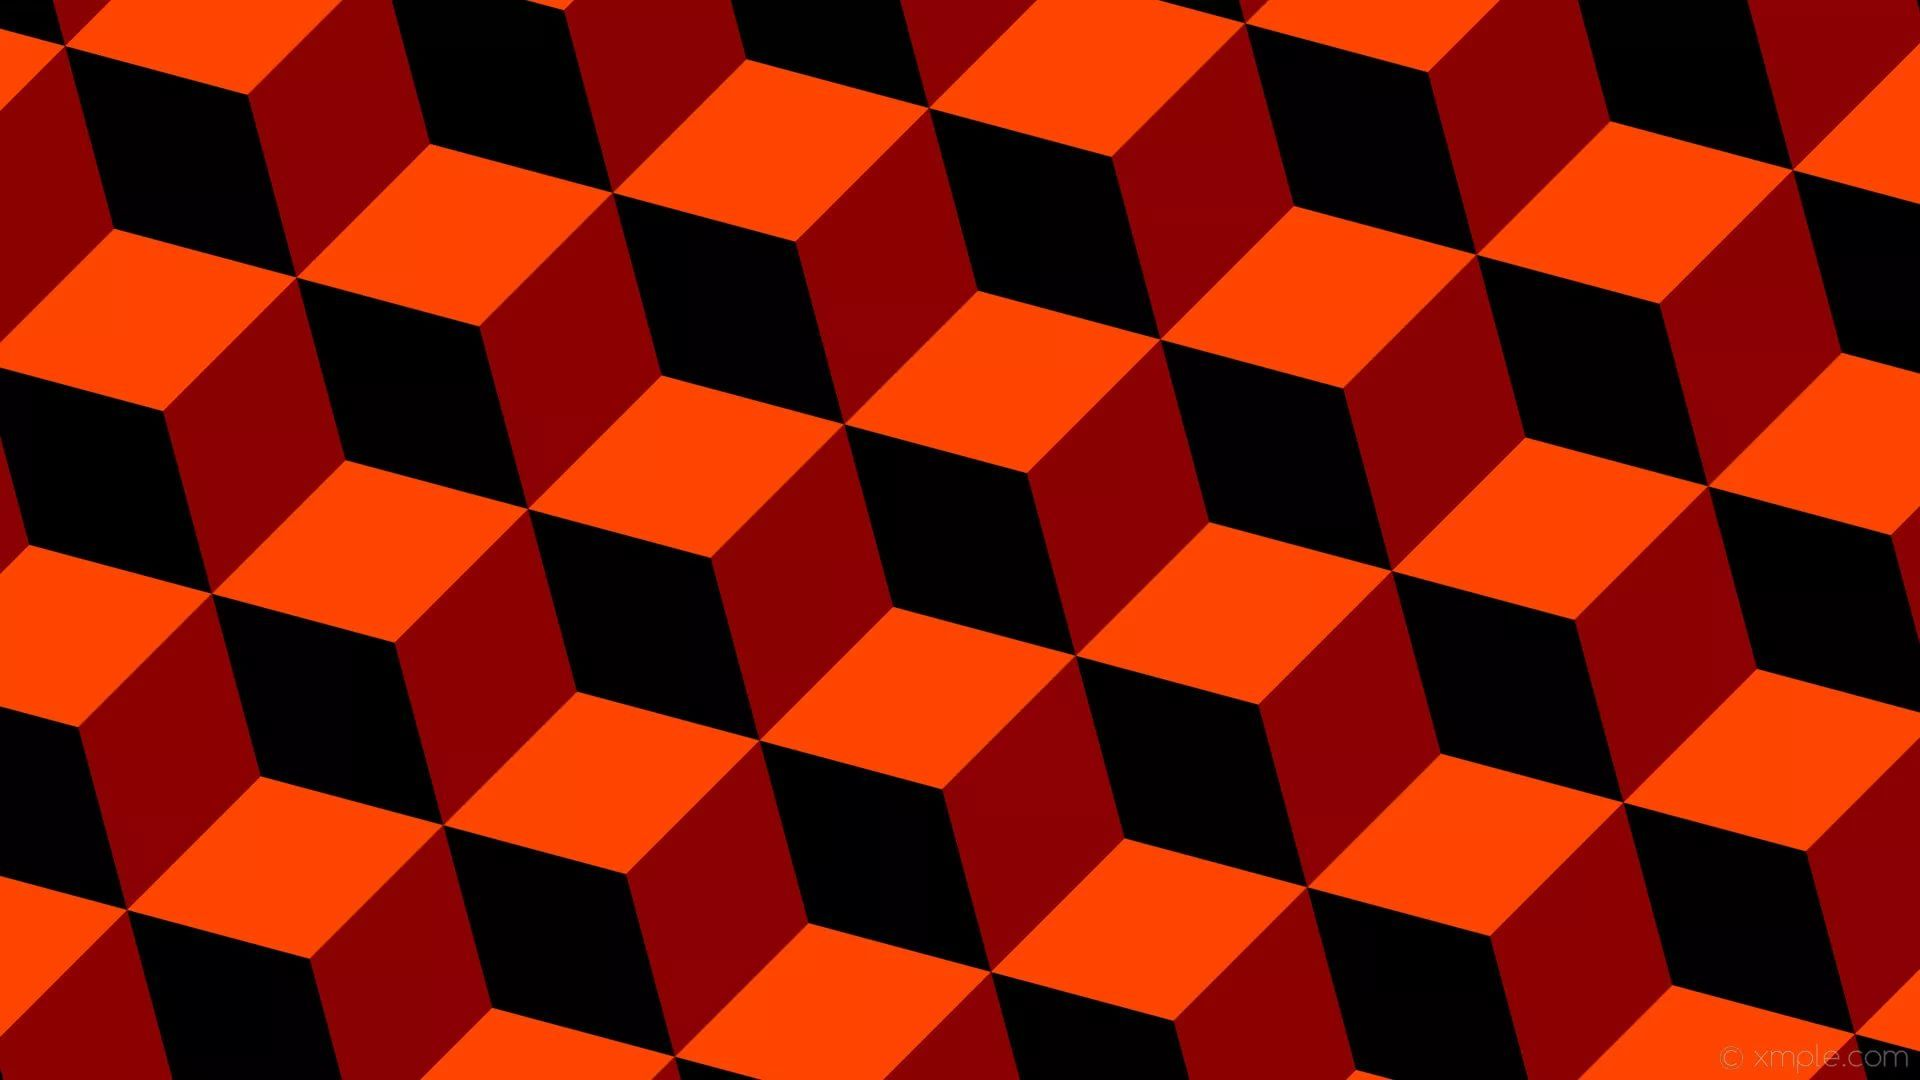 Black And Orange wallpaper and themes